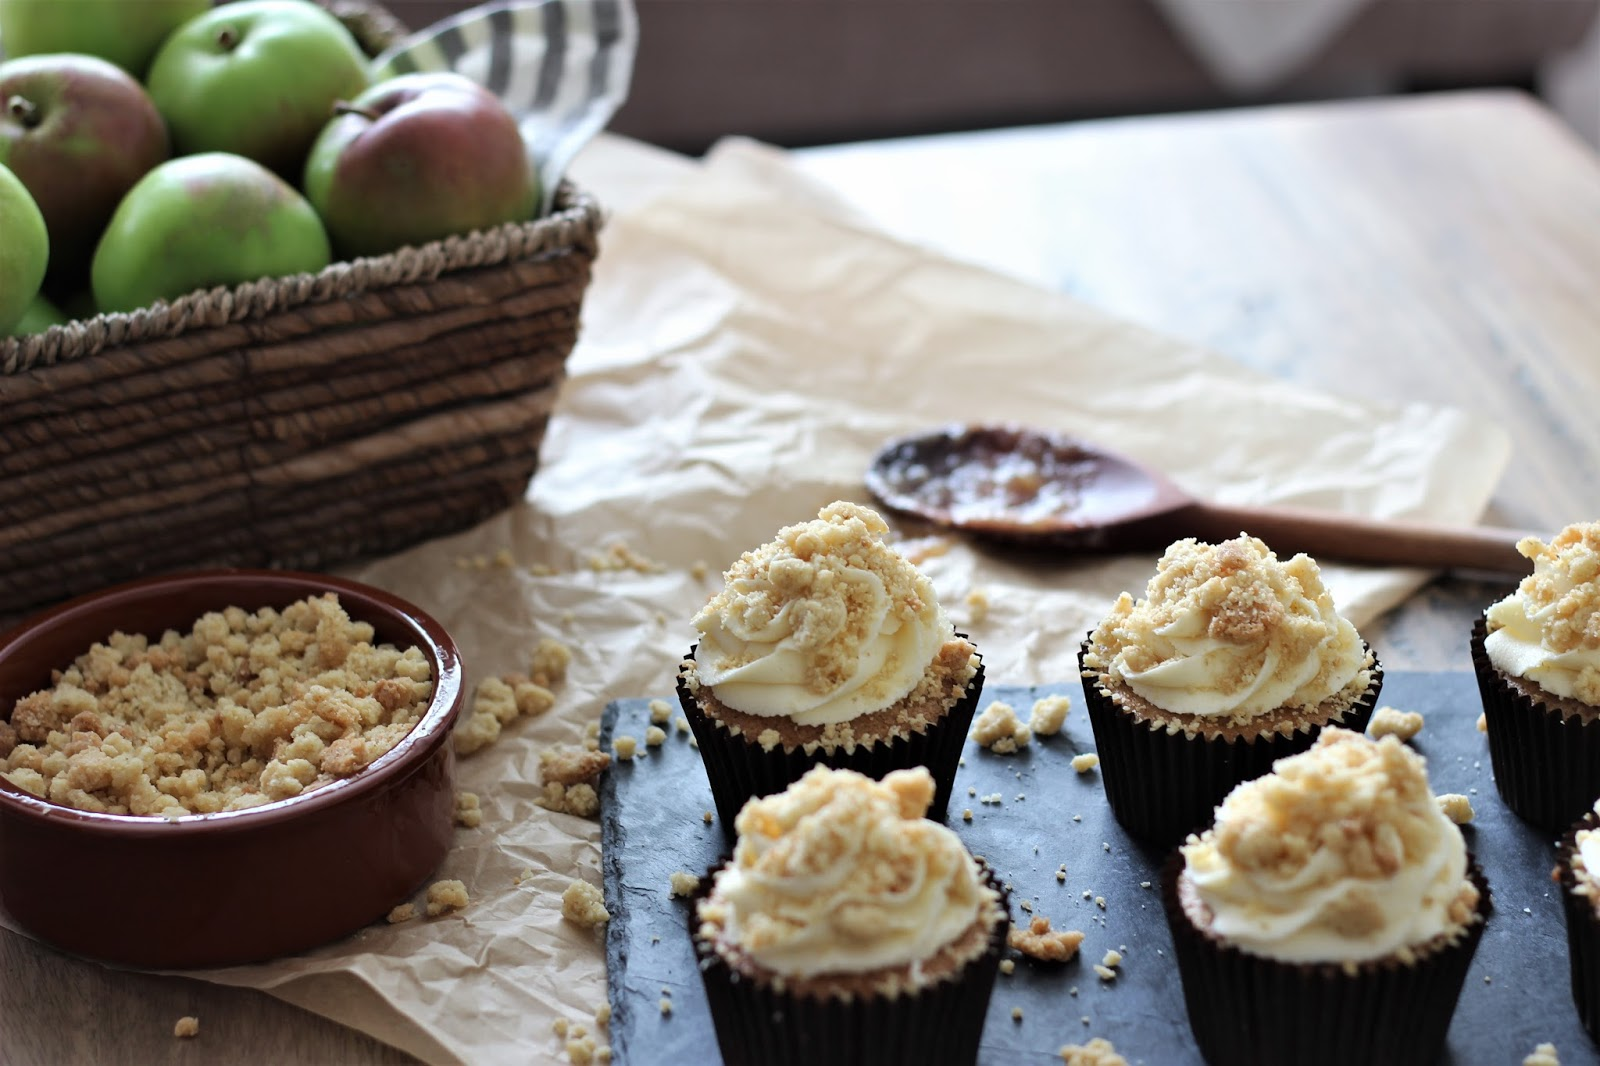 Apple-crumble-cupcakes-with-maple-syrup-buttercream